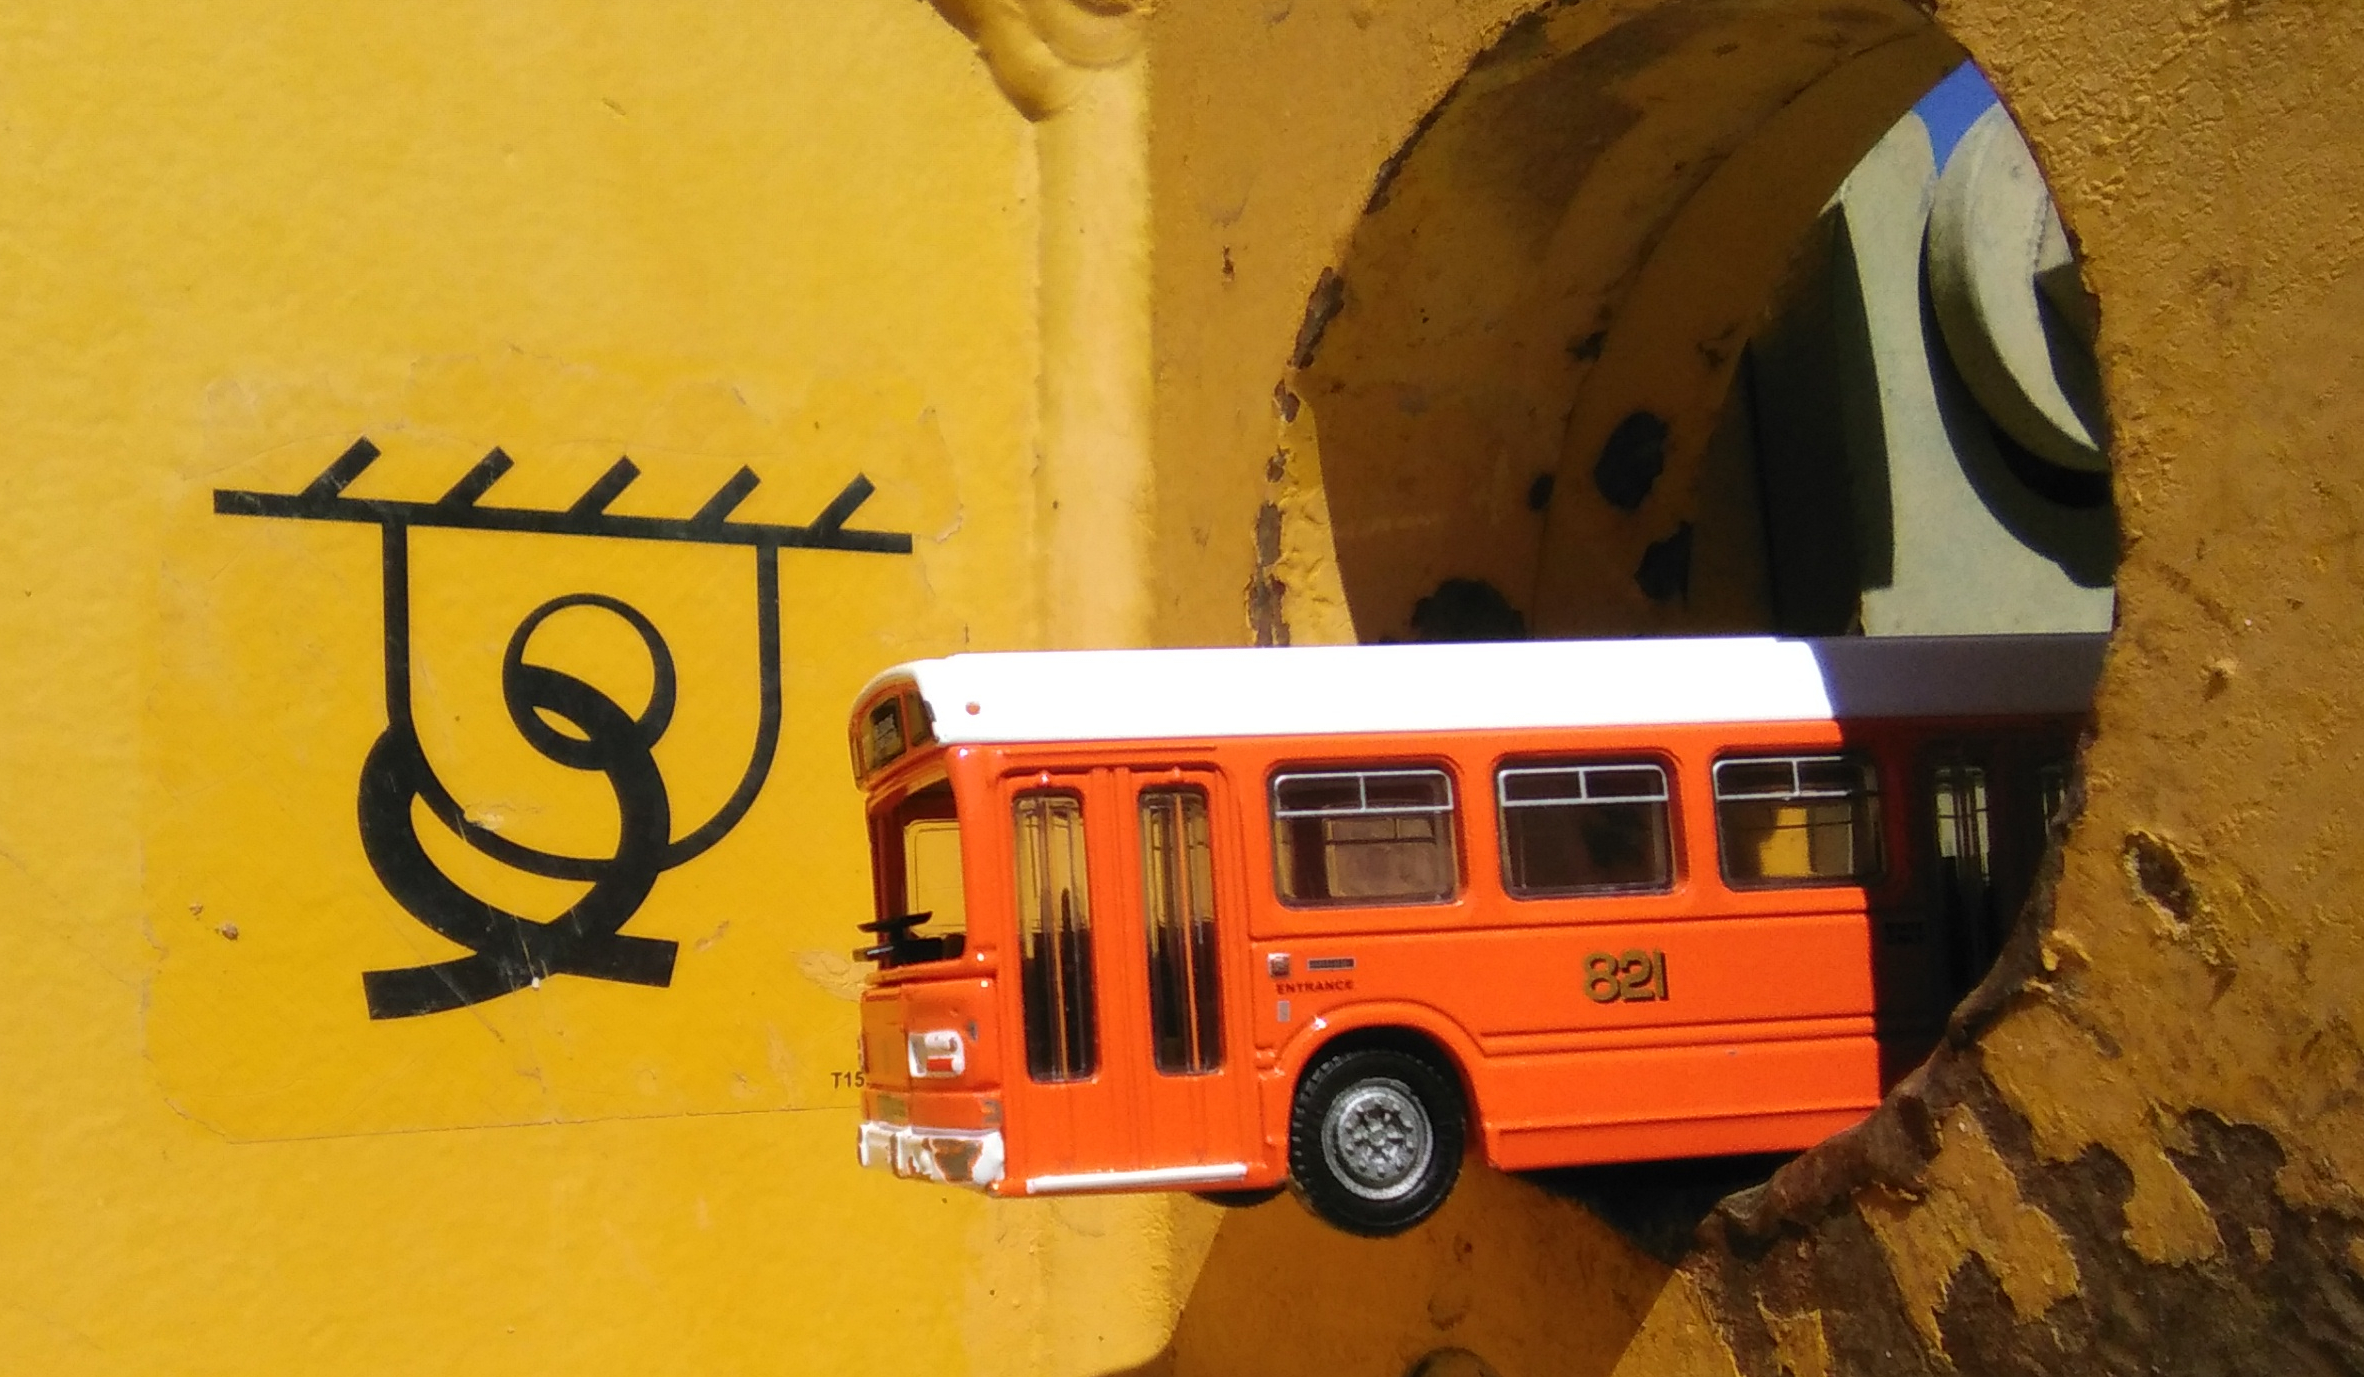 An orange toy passenger bus sticks through a metallic hole in a yellow background of a road building machine, with an interesting symbol printed in black.